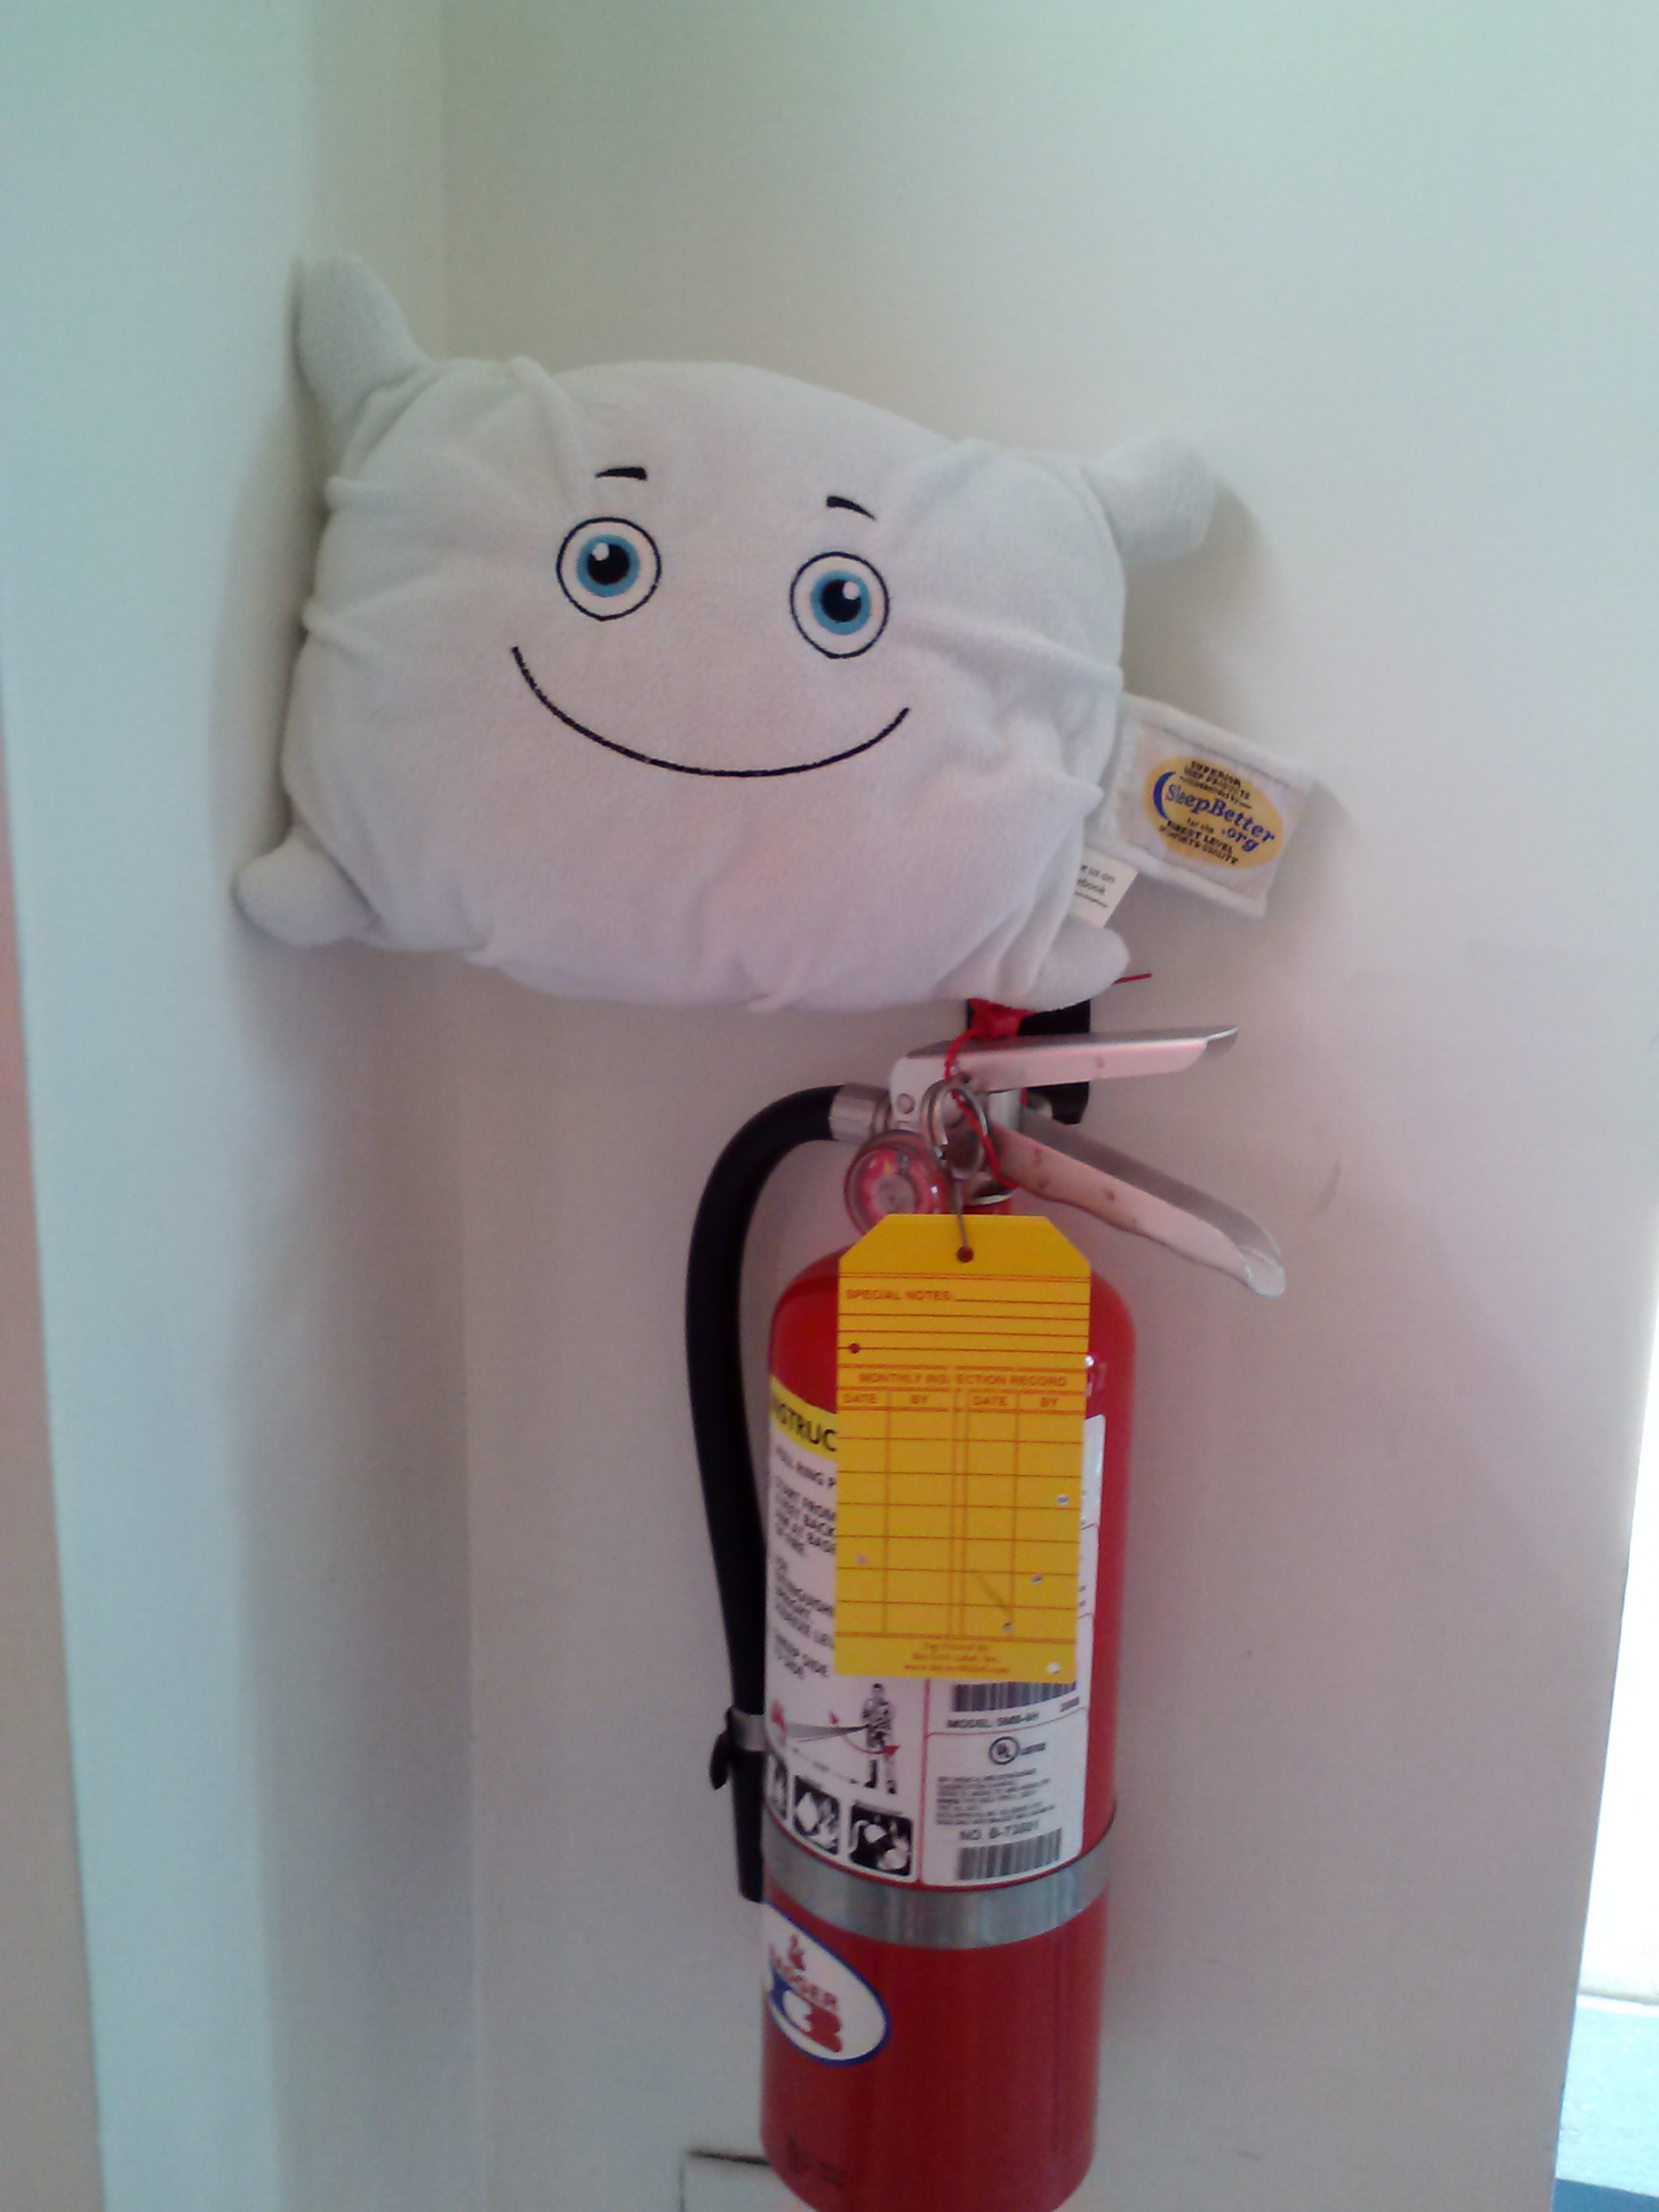 We are learning about fire safety this week. We will have a fire drill later.